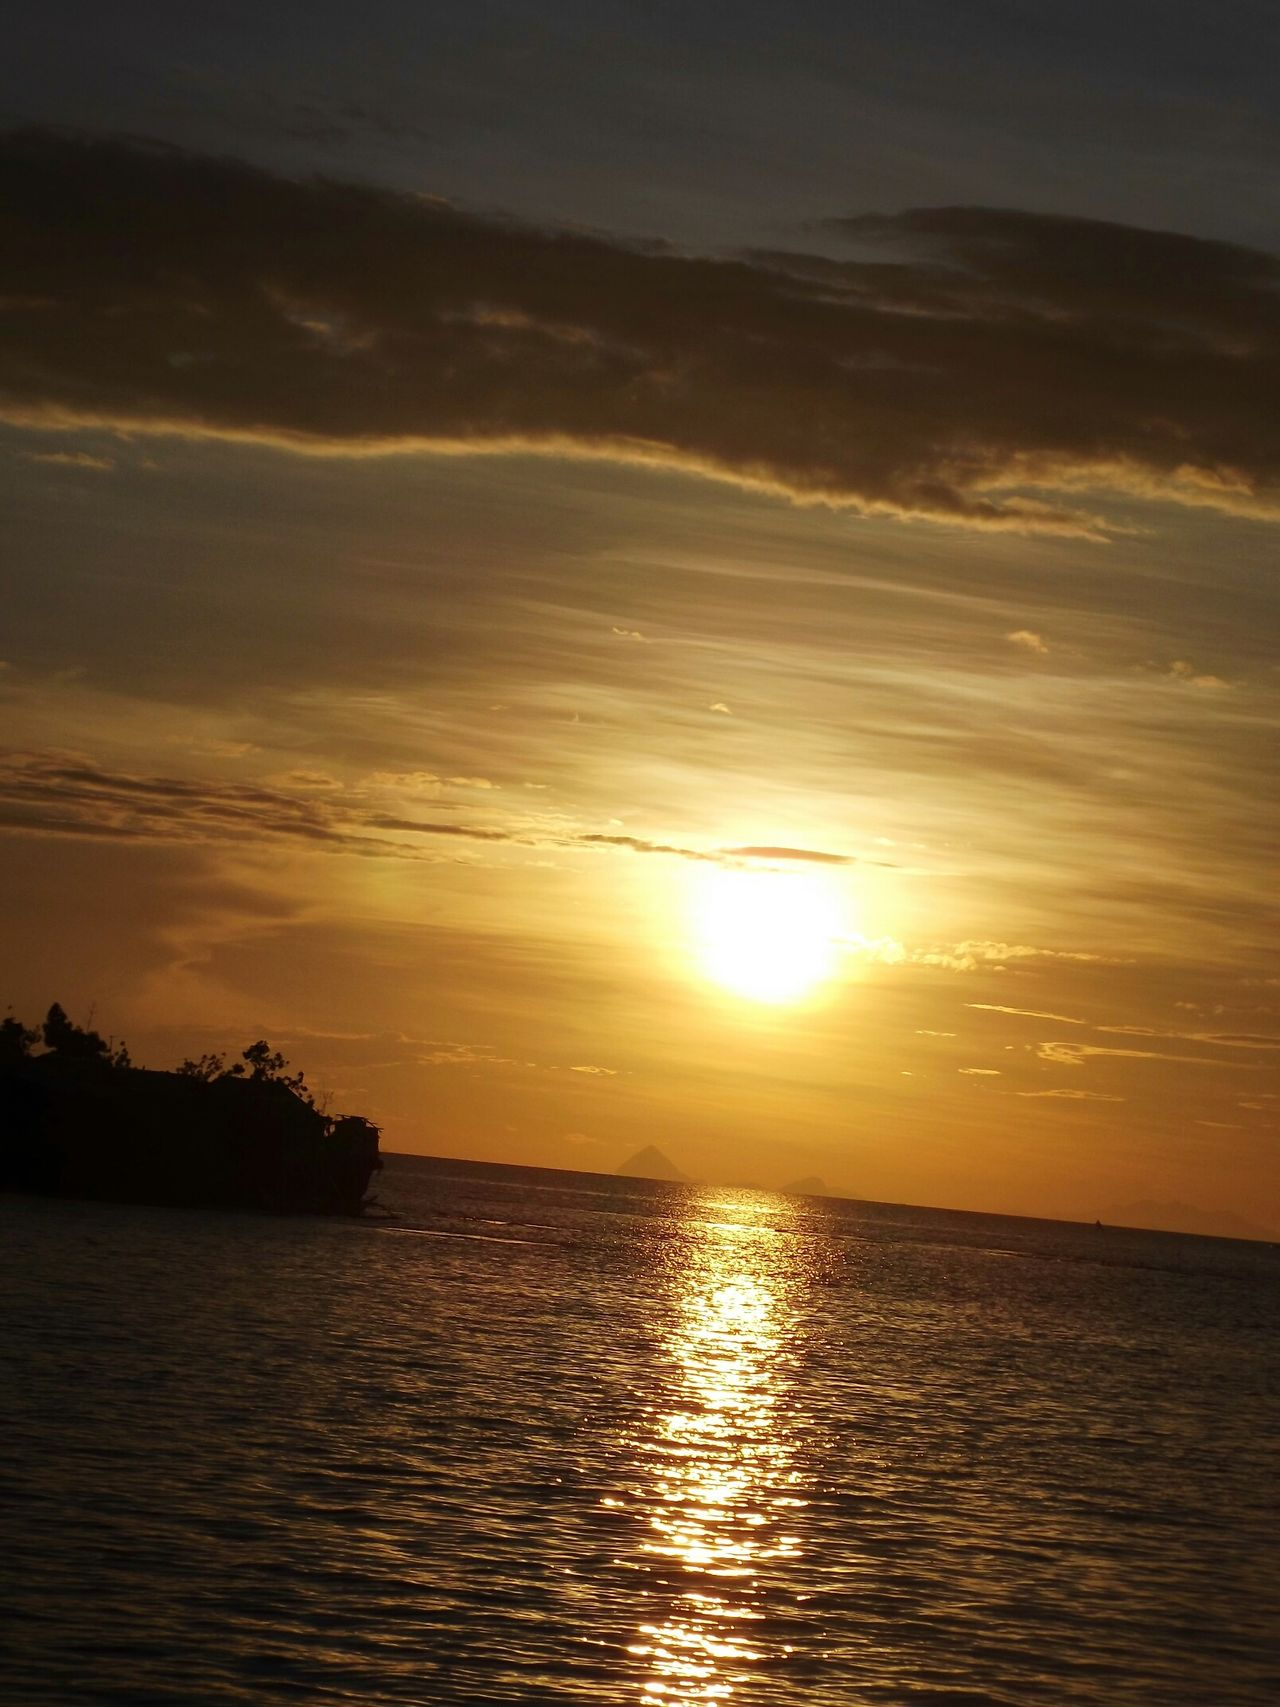 Eyeem Philippines Sunset #sun #clouds #skylovers #sky #nature #beautifulinnature #naturalbeauty #photography #landscape Sunsets Sunset_collection Sunset Lovers Sunset_universe Bantayan Island, Cebu FujiFilm Finepix S3400